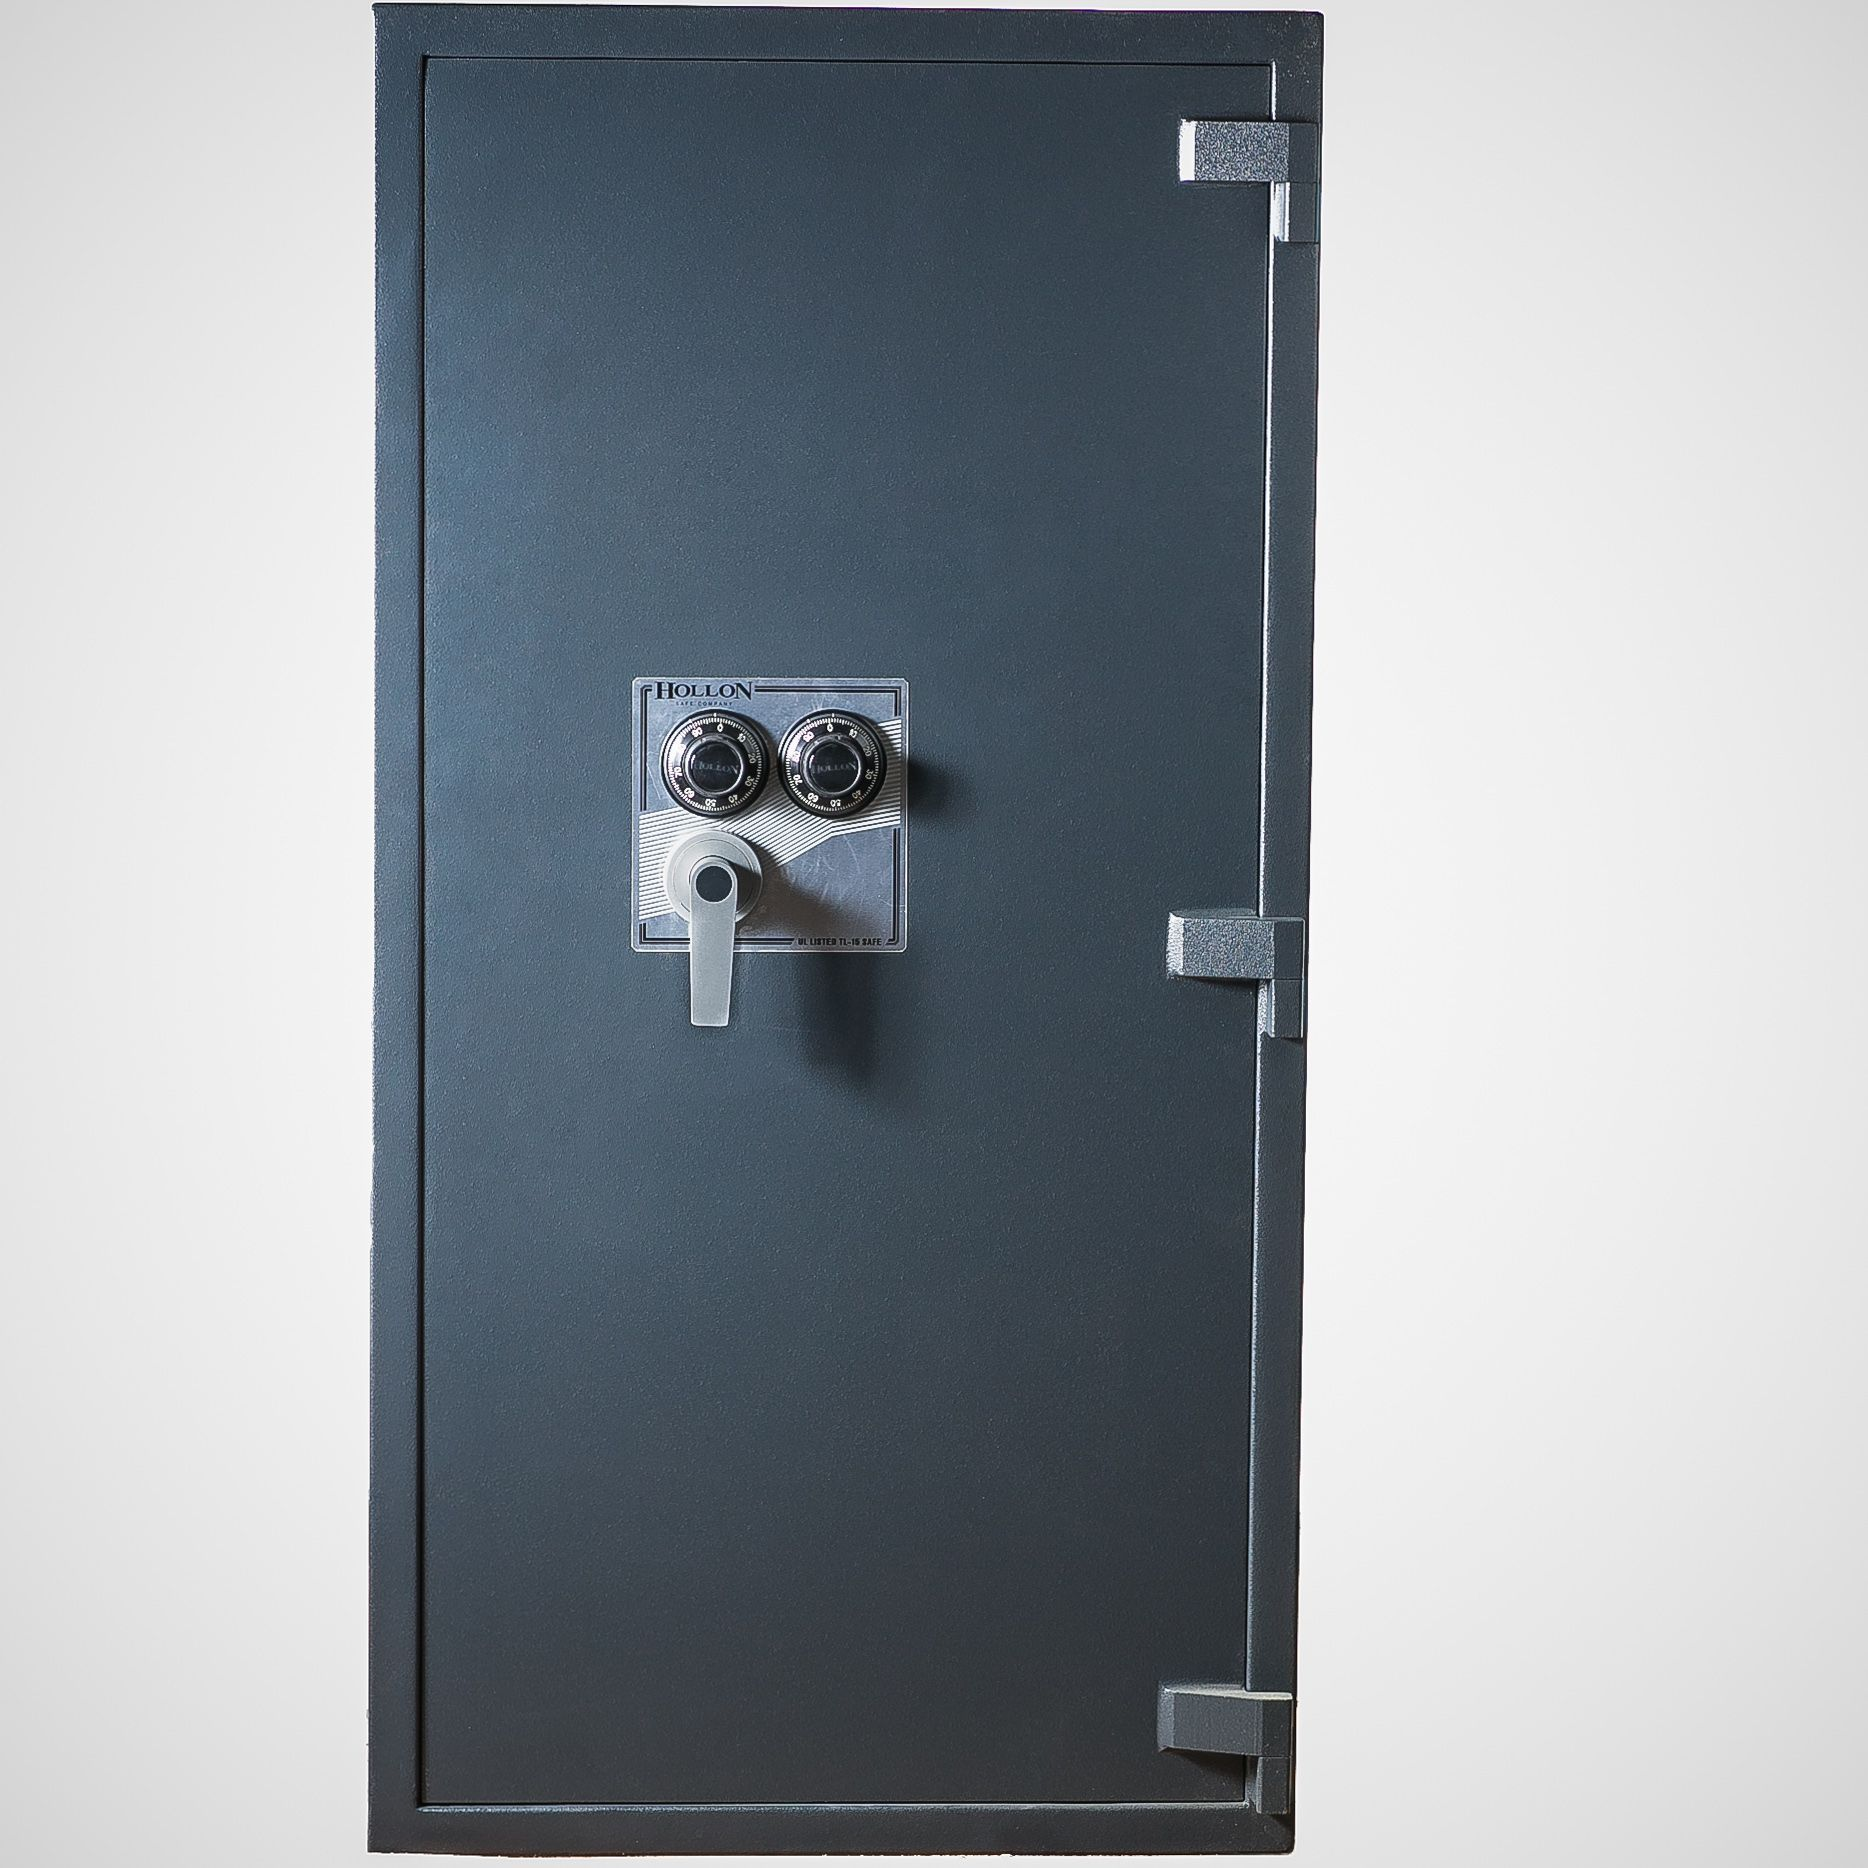 Hollon Pm 5826 2 Hour Fire Rating Tl 15 Rated Safe Locker